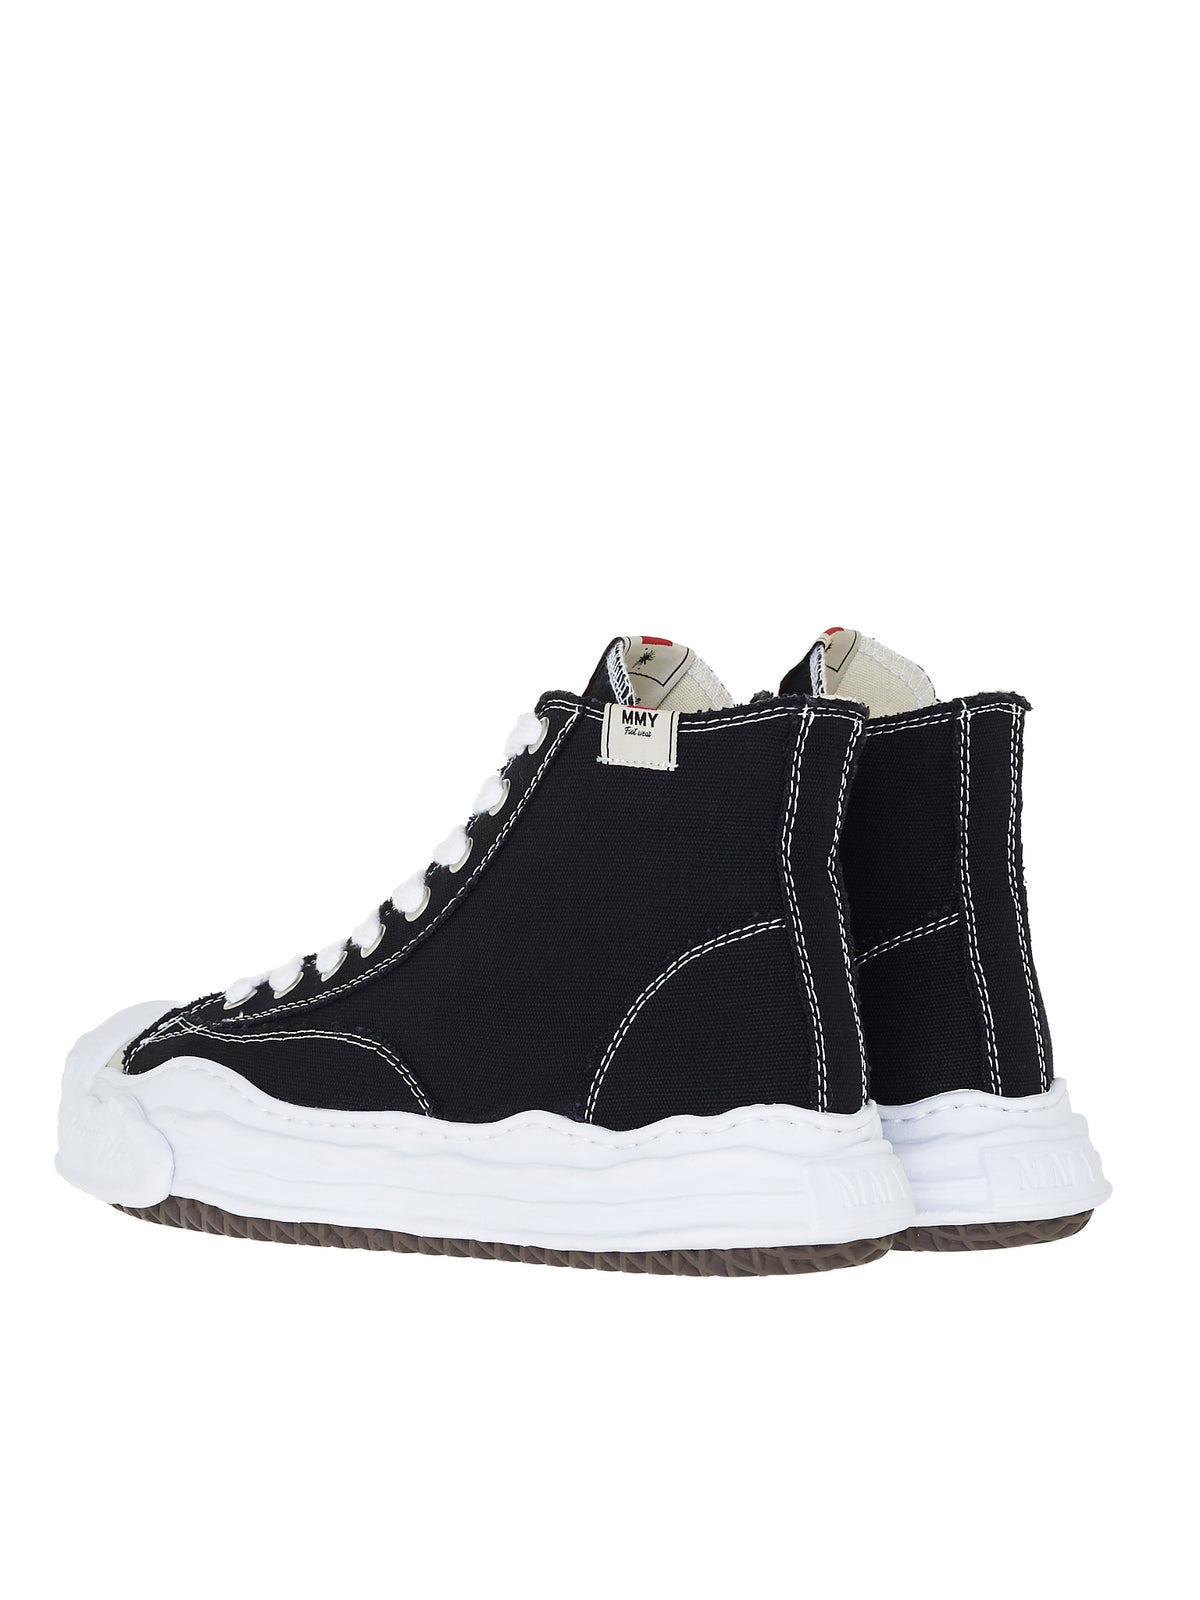 Original Sole Hi-Top Sneakers (A05FW701-BLACK)